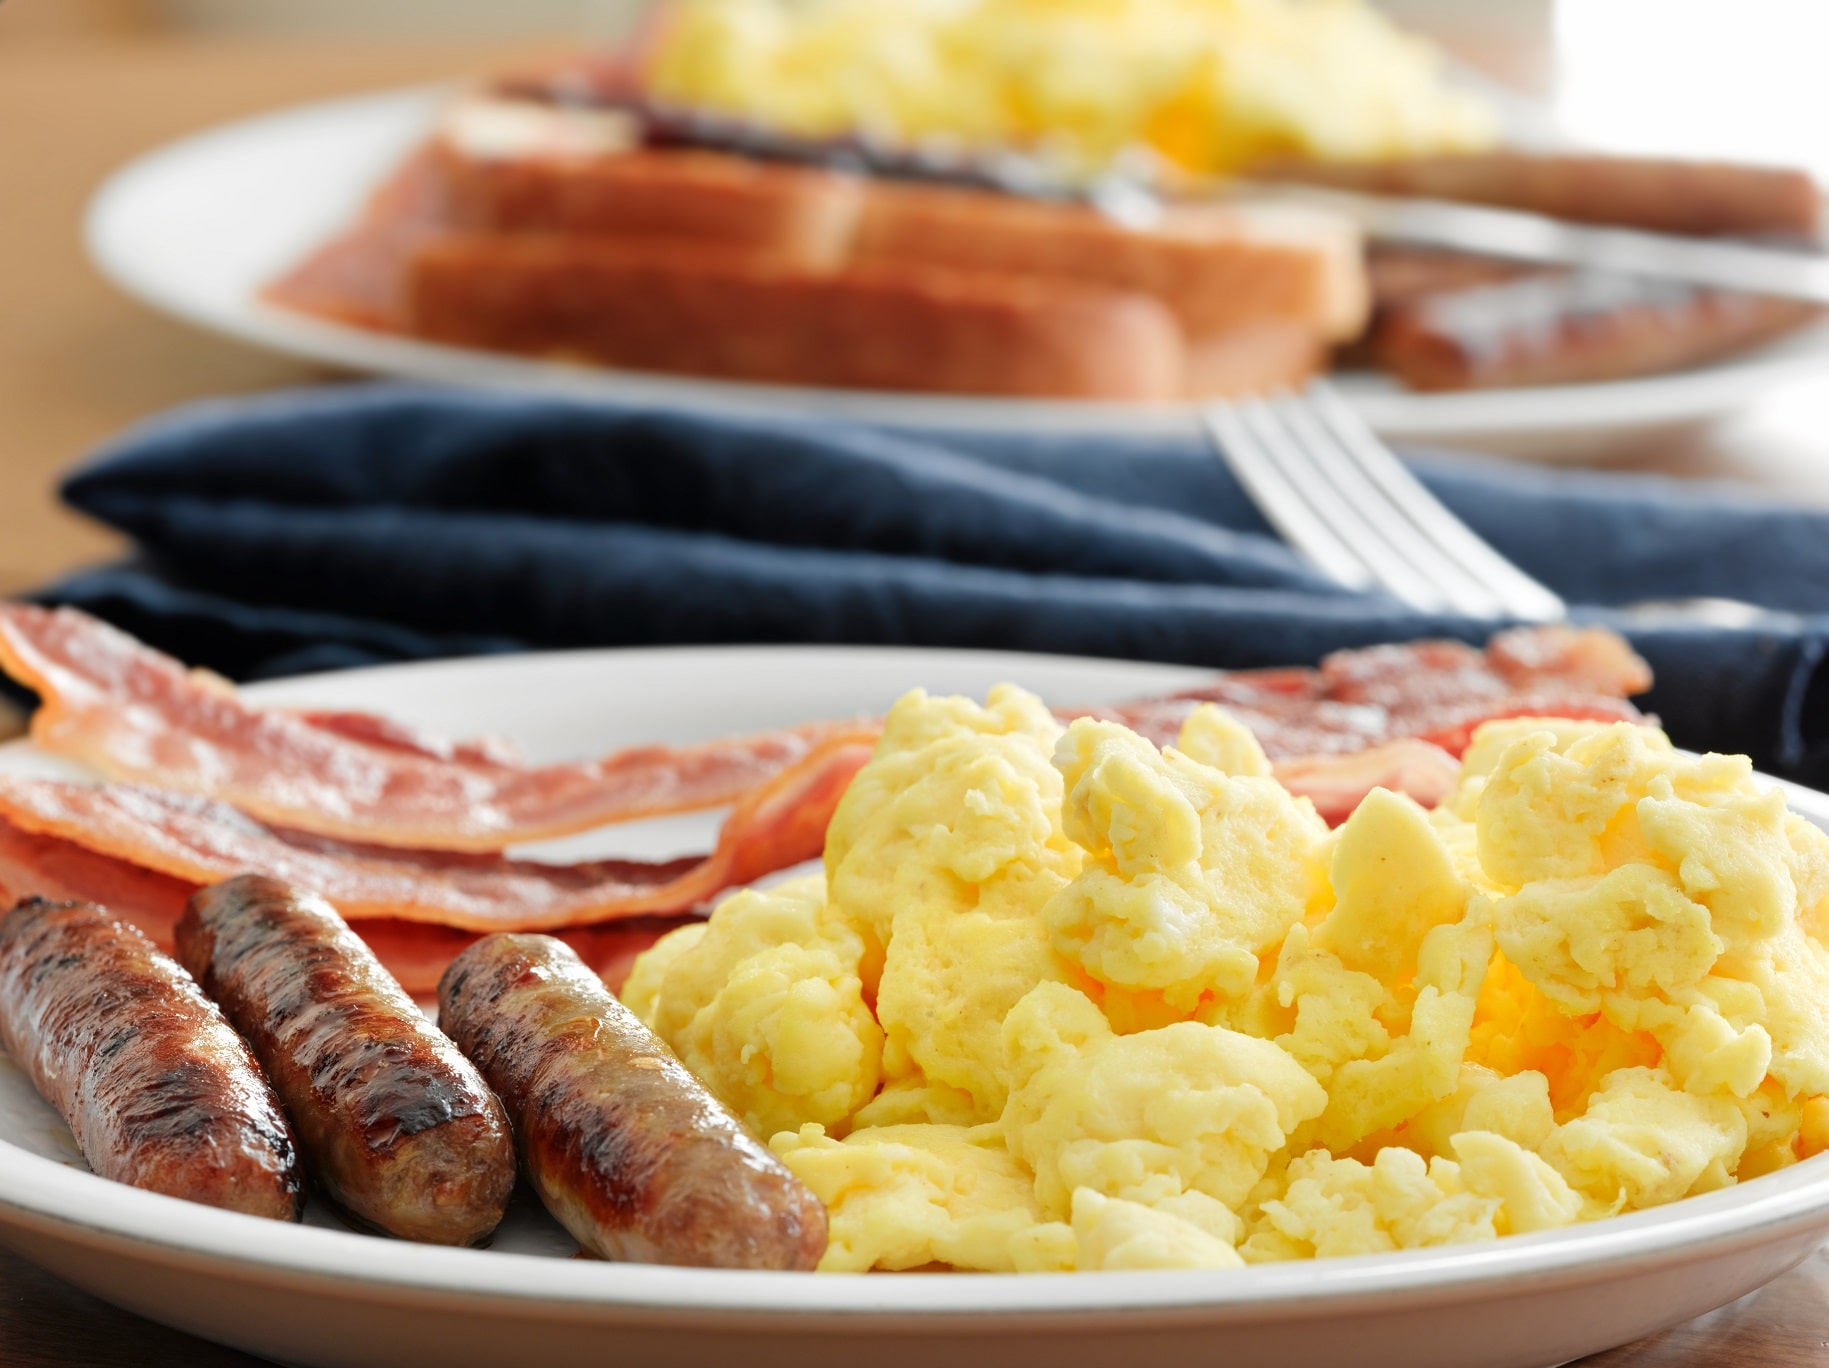 A plate of scrambled eggs, sausage and bacon with a plate blurred in the background with assorted breakfast food